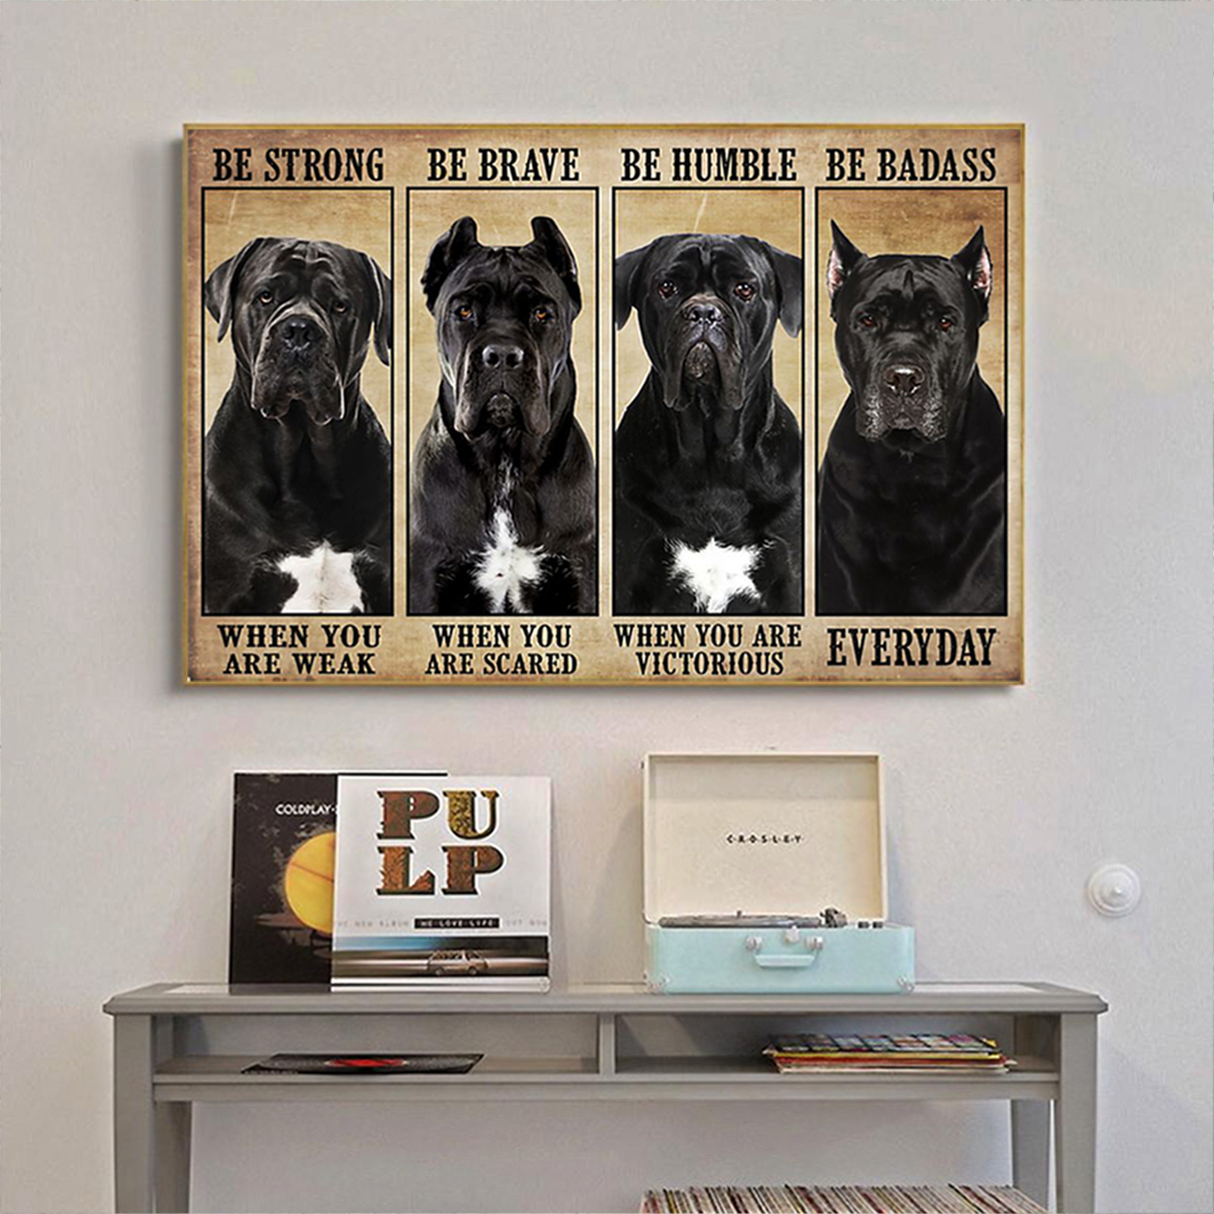 Cane corso be strong be brave be humble be badass poster A1